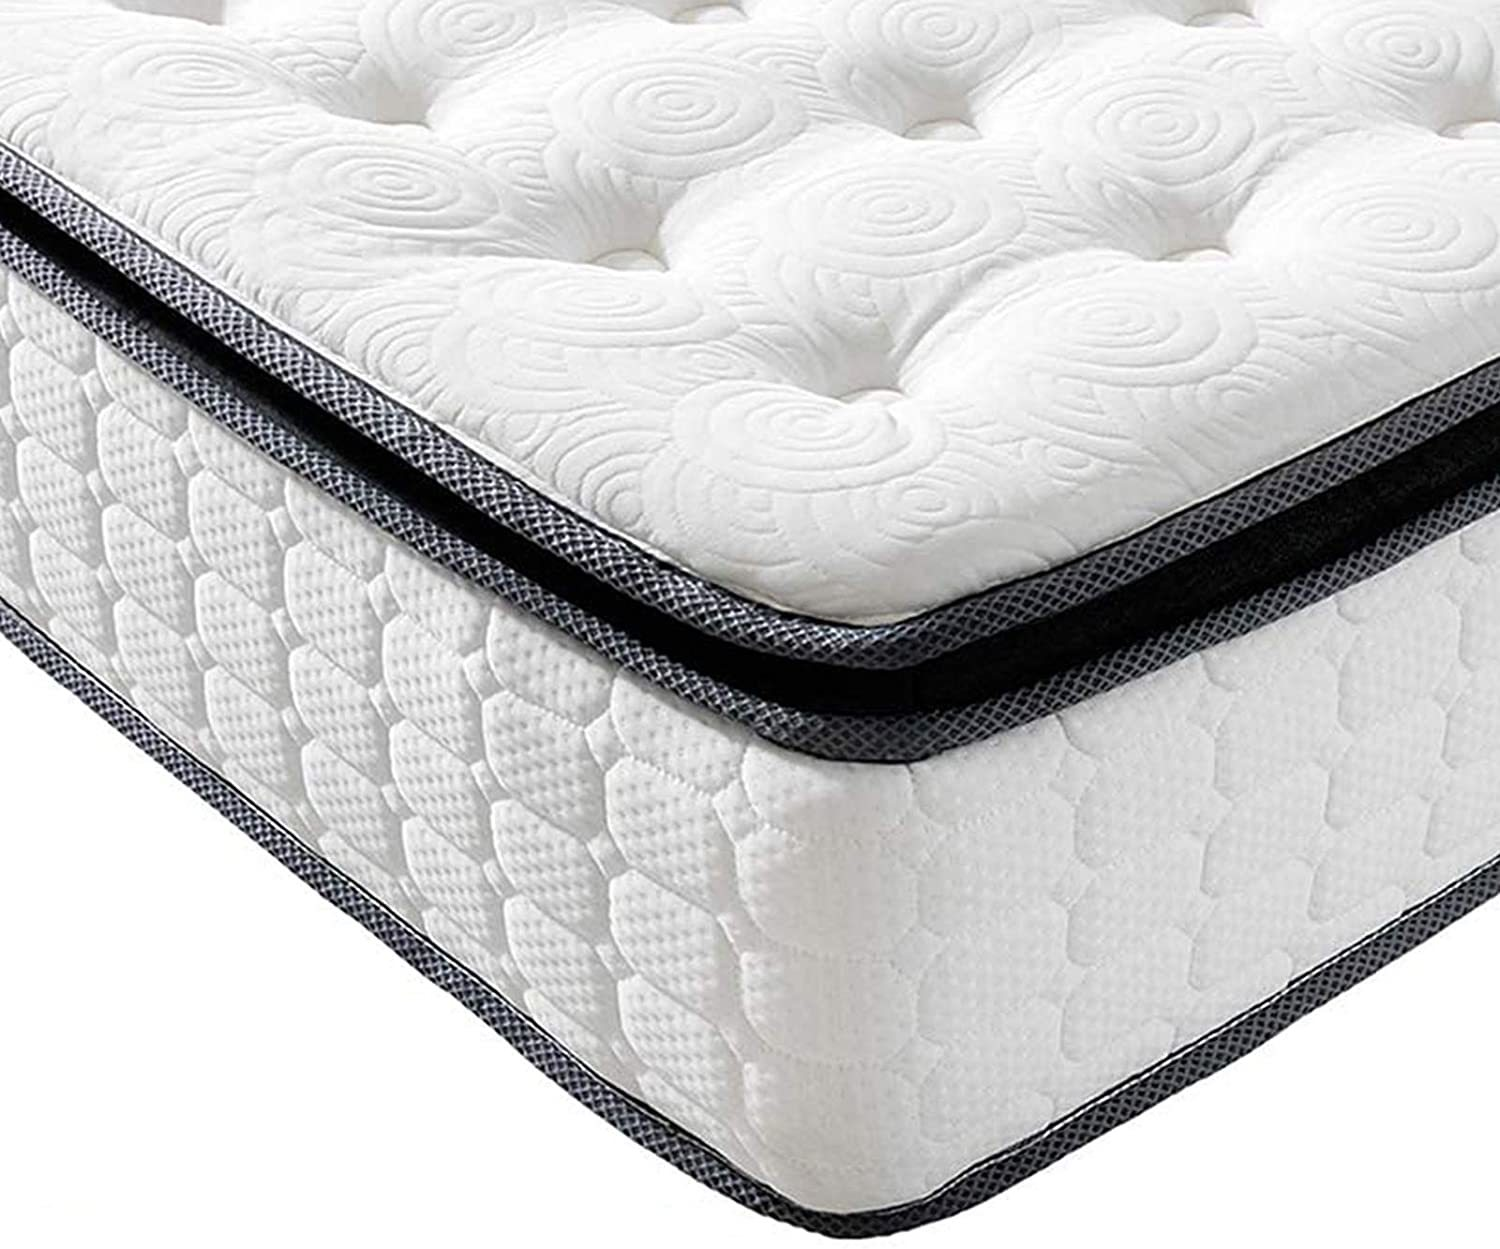 Wholesale Spring Mattress Good For Back Pain Continuous Spring Bedroom Furniture